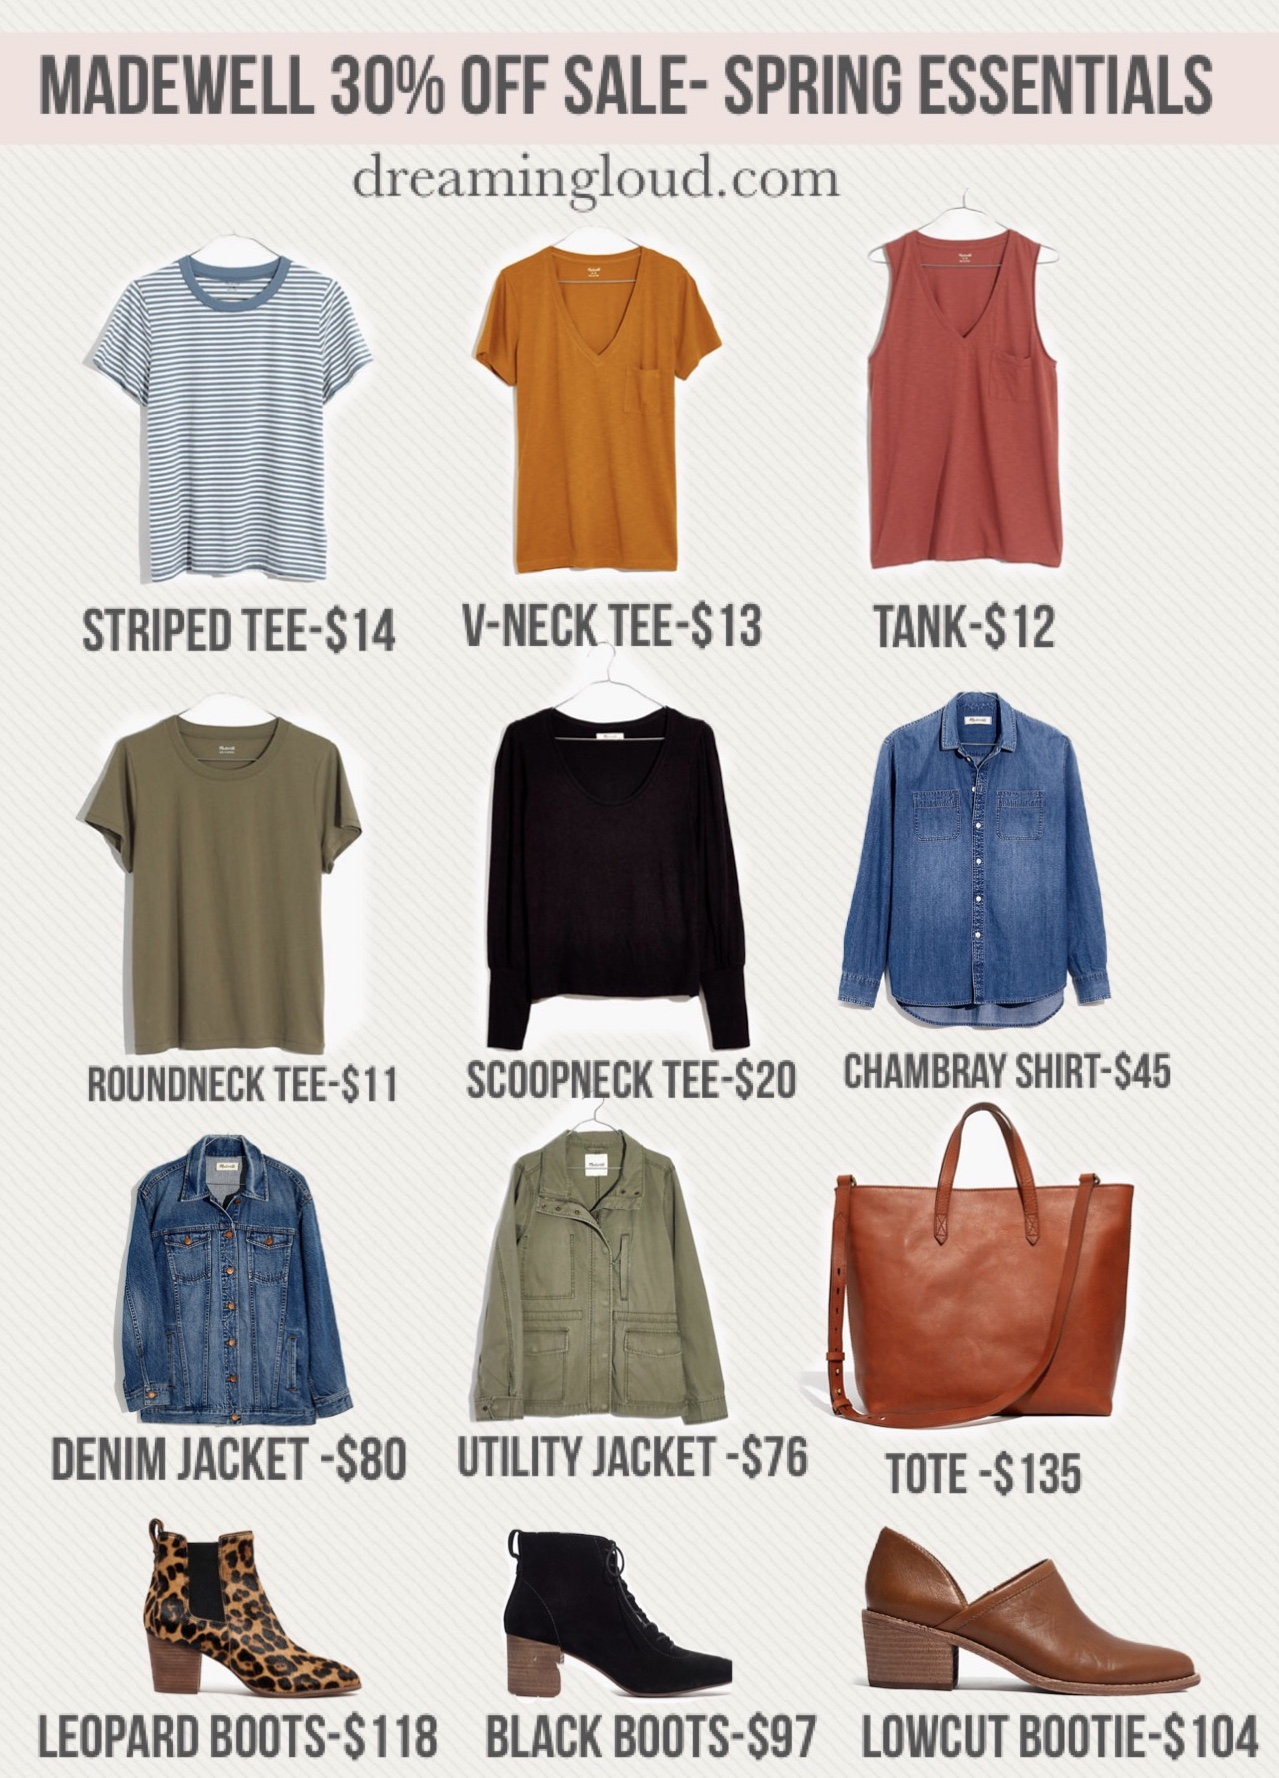 Madewell Spring Essentials on 30% off Sale by top us fashion blogger dreaming loud | Madewell Spring 2020 by popular modest fashion blog, Dreaming Loud: collage image of Madewell tees, Madewell denim, Madewelll totes, and Madewell boots.